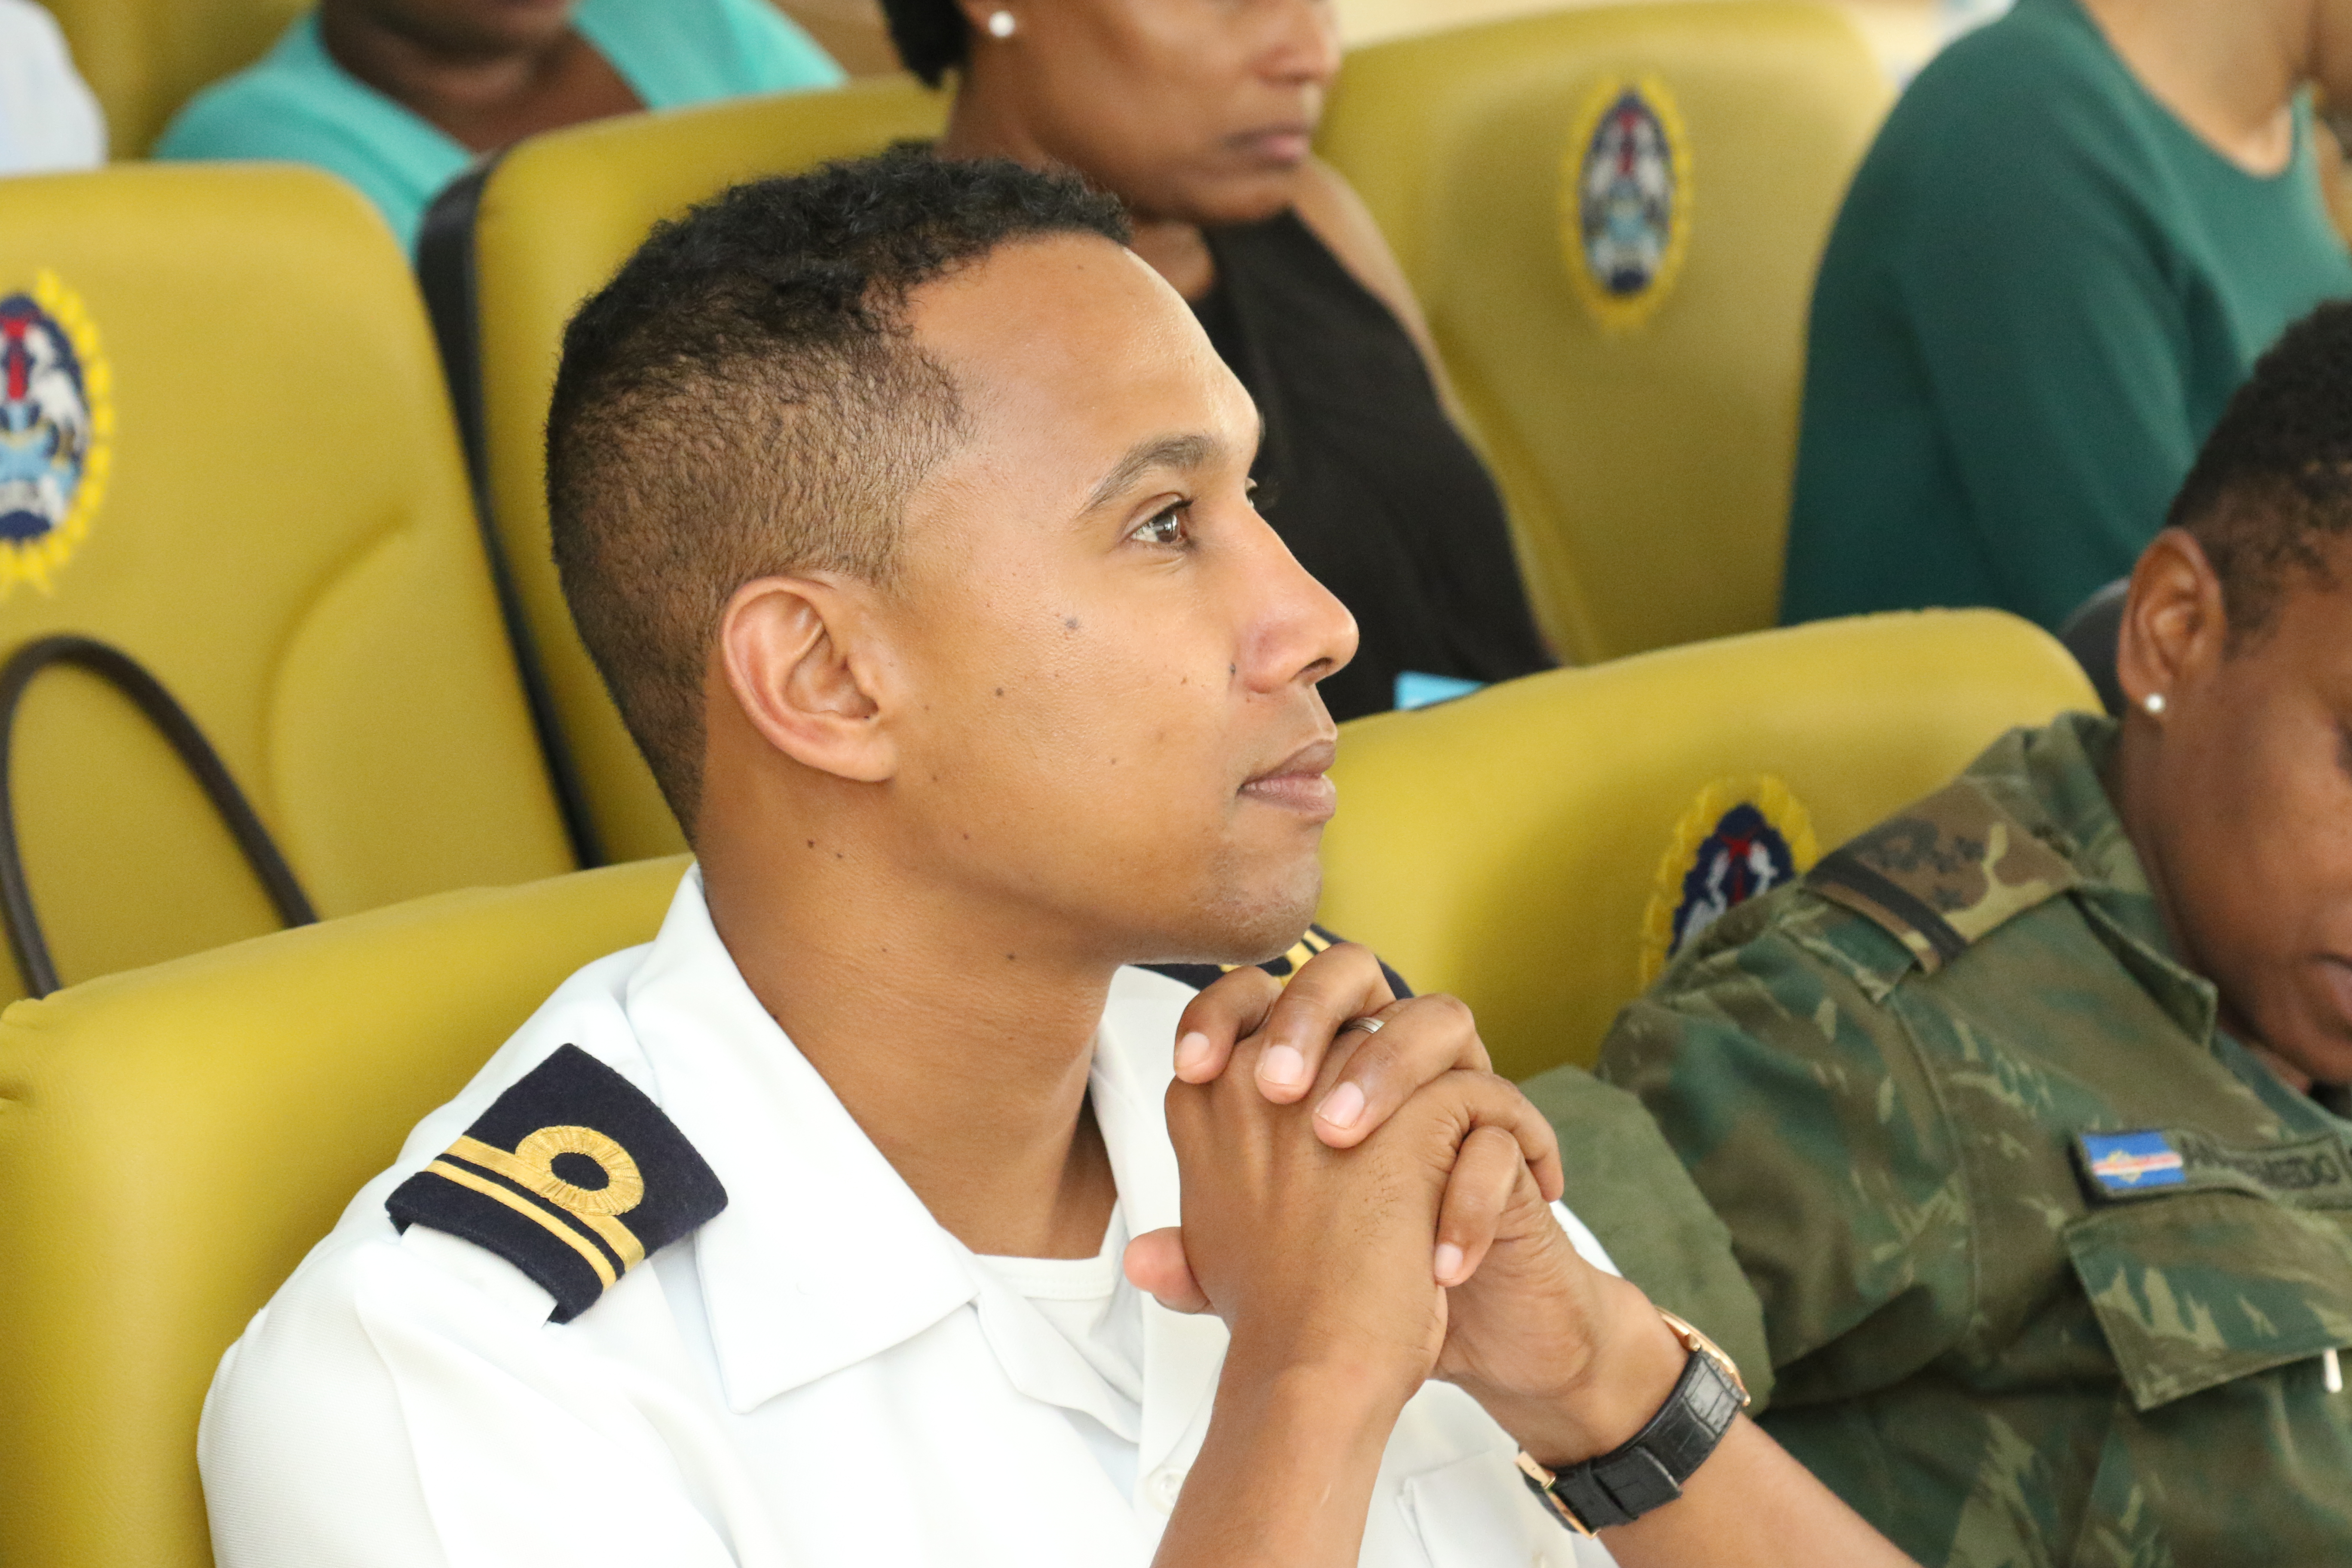 PRAIA, Cabo Verde – Cabo Verdean Lt. Areolino Delgado, commanding officer of coast guard patrol boat, listens during the public affairs information exchange in Praia, Cabo Verde June 28, 2018.